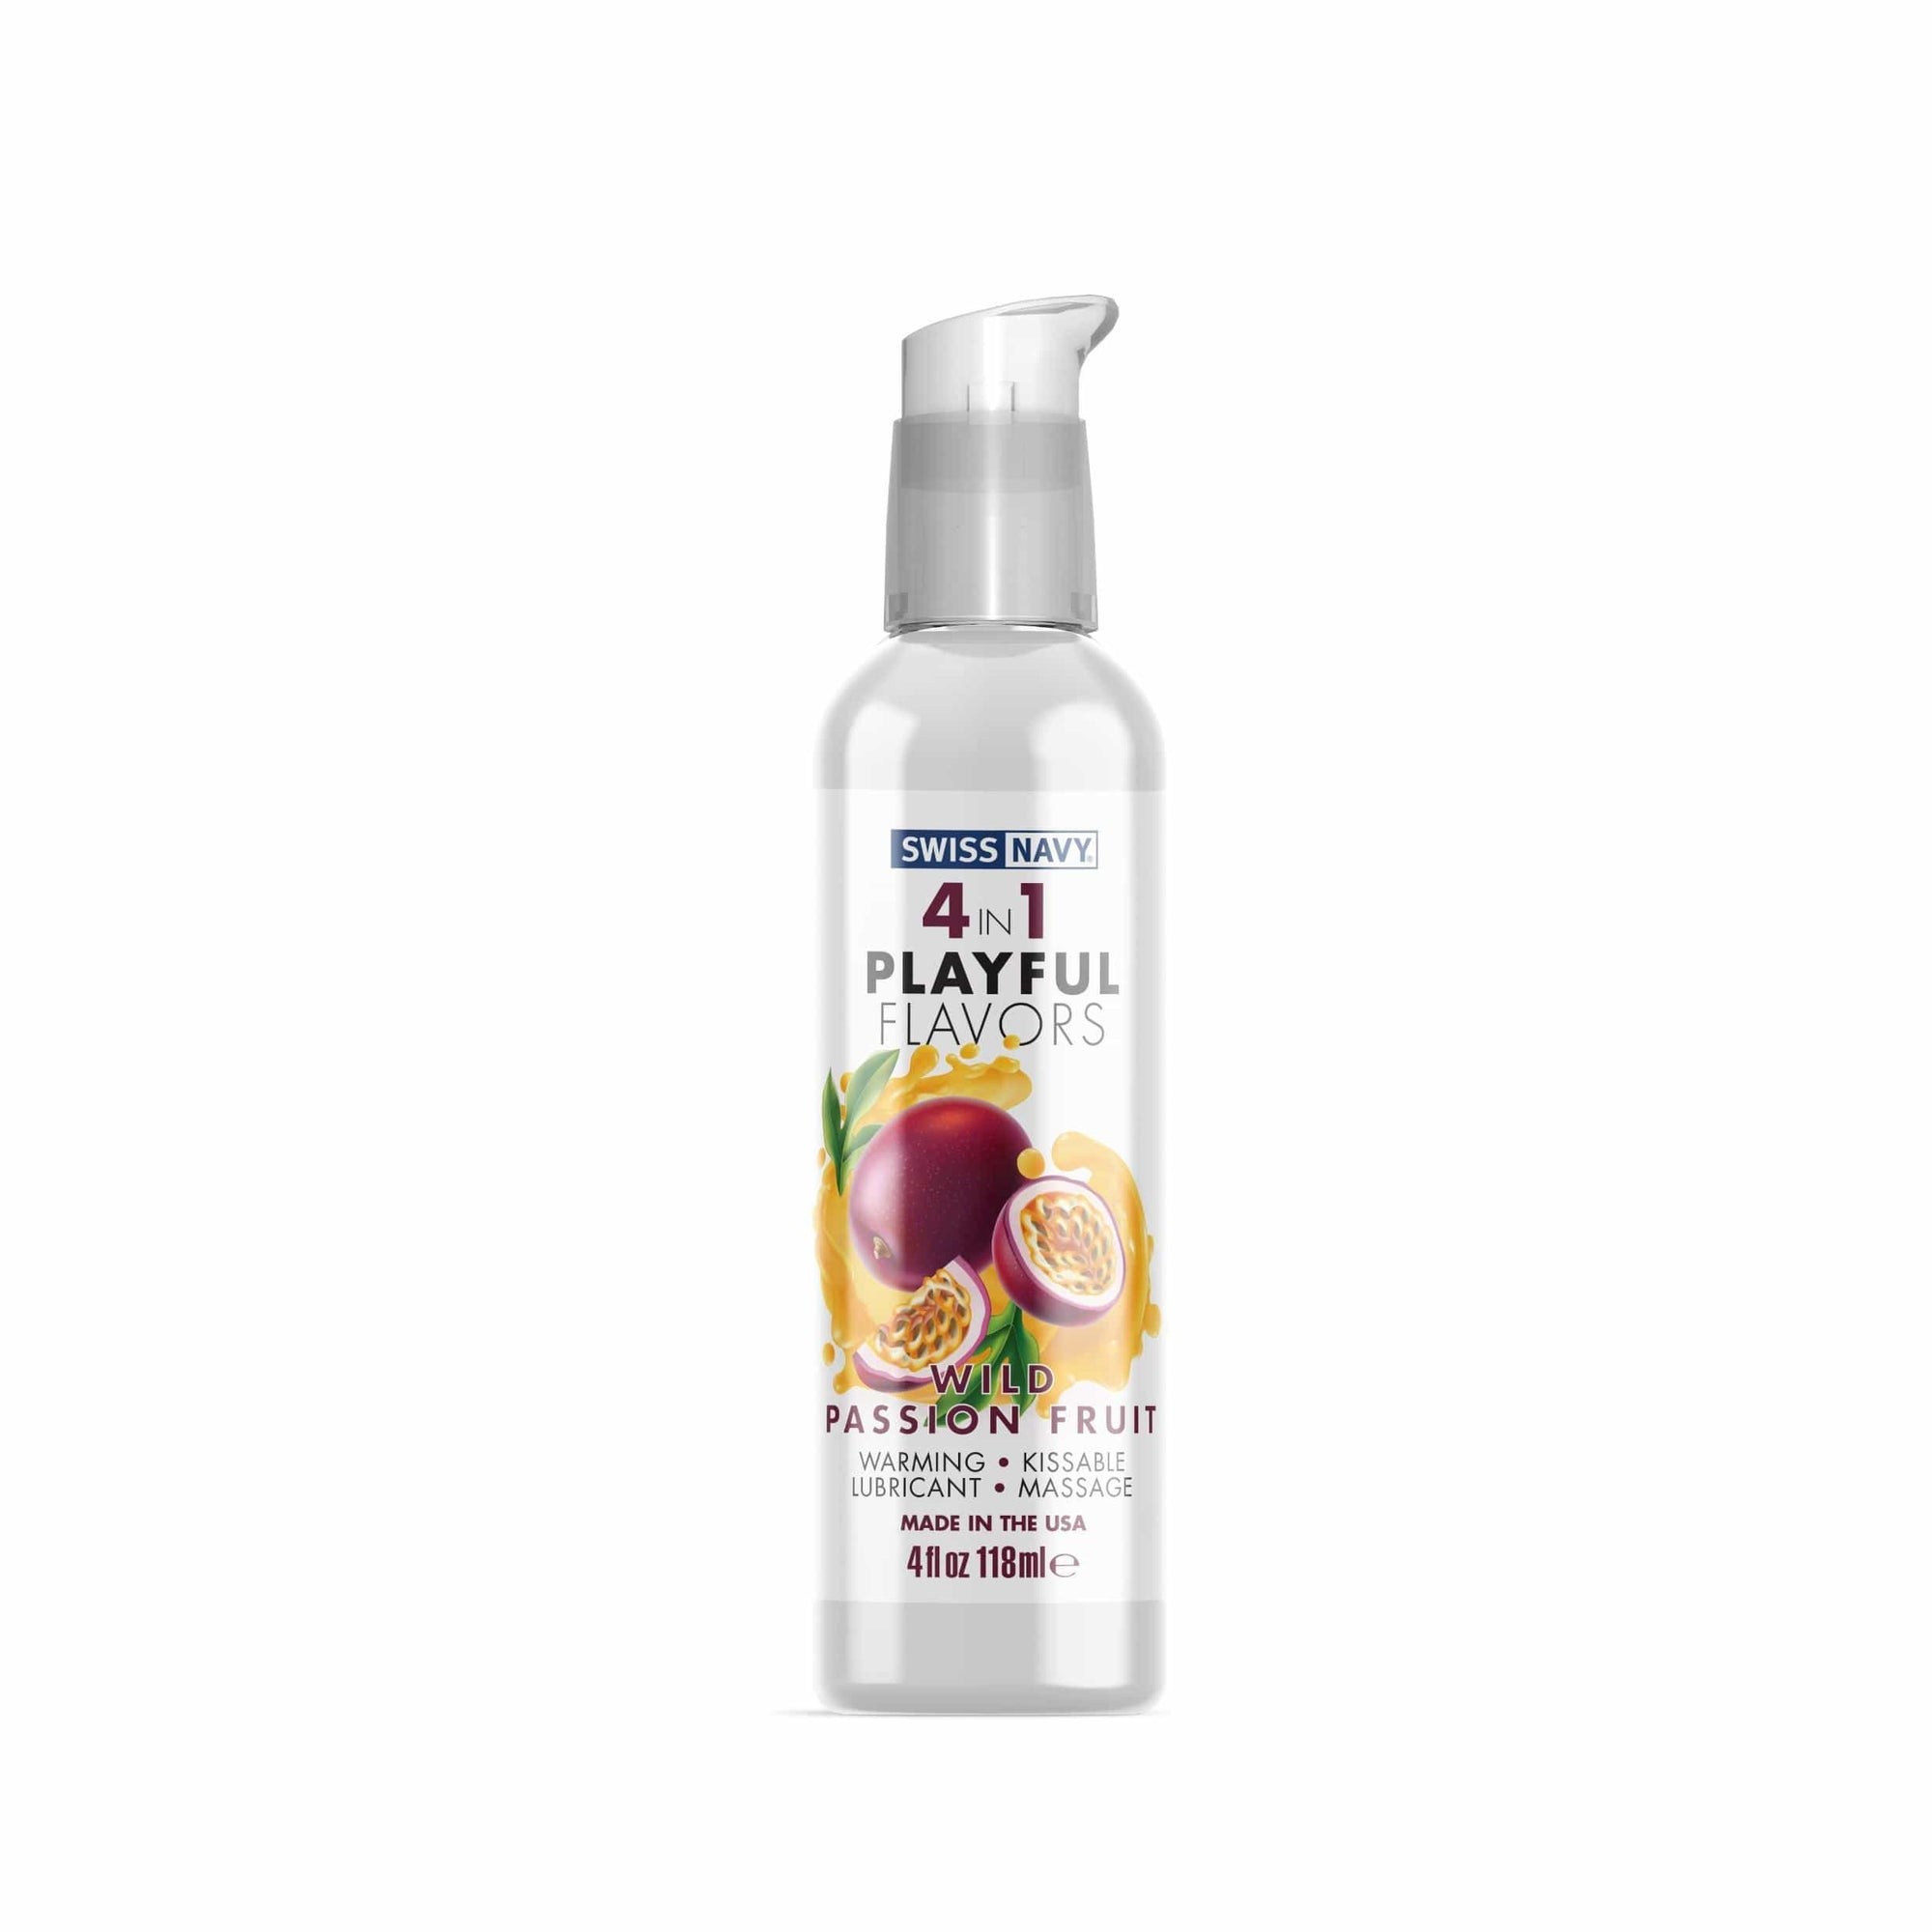 swiss navy 4 in 1 playful flavors wild passion fruit 4 fl oz